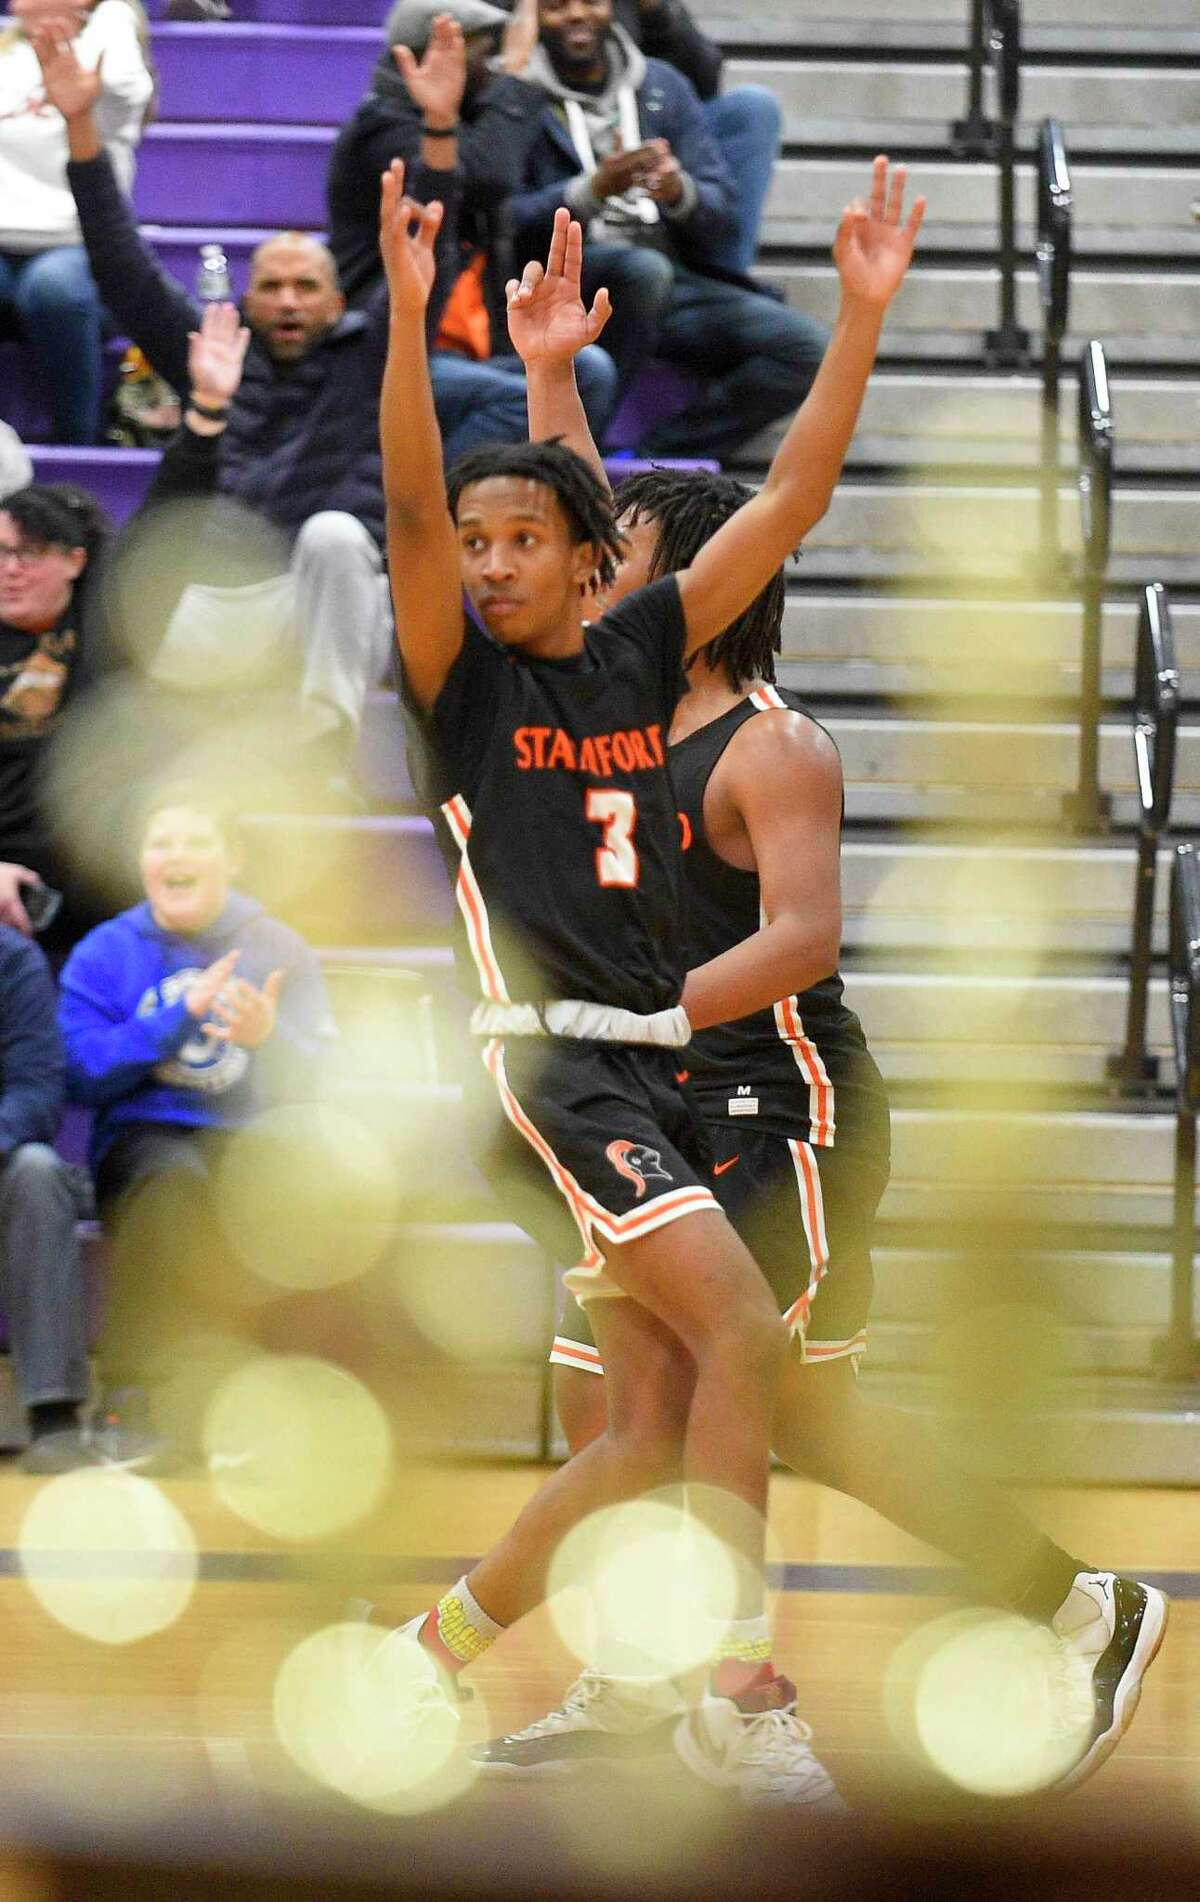 Stamford's Damani Taylor (3) celebrates his fade away three pointer in the third quarter against Westhill in a boys basketball game of the MLK Classic Basketball Tournament at Westhill High School in Stamford, Conn. on Feb. 1, 2020. Taylor shot, the turning point and go ahead basket helped Stamford defeat Westhill 57-51.